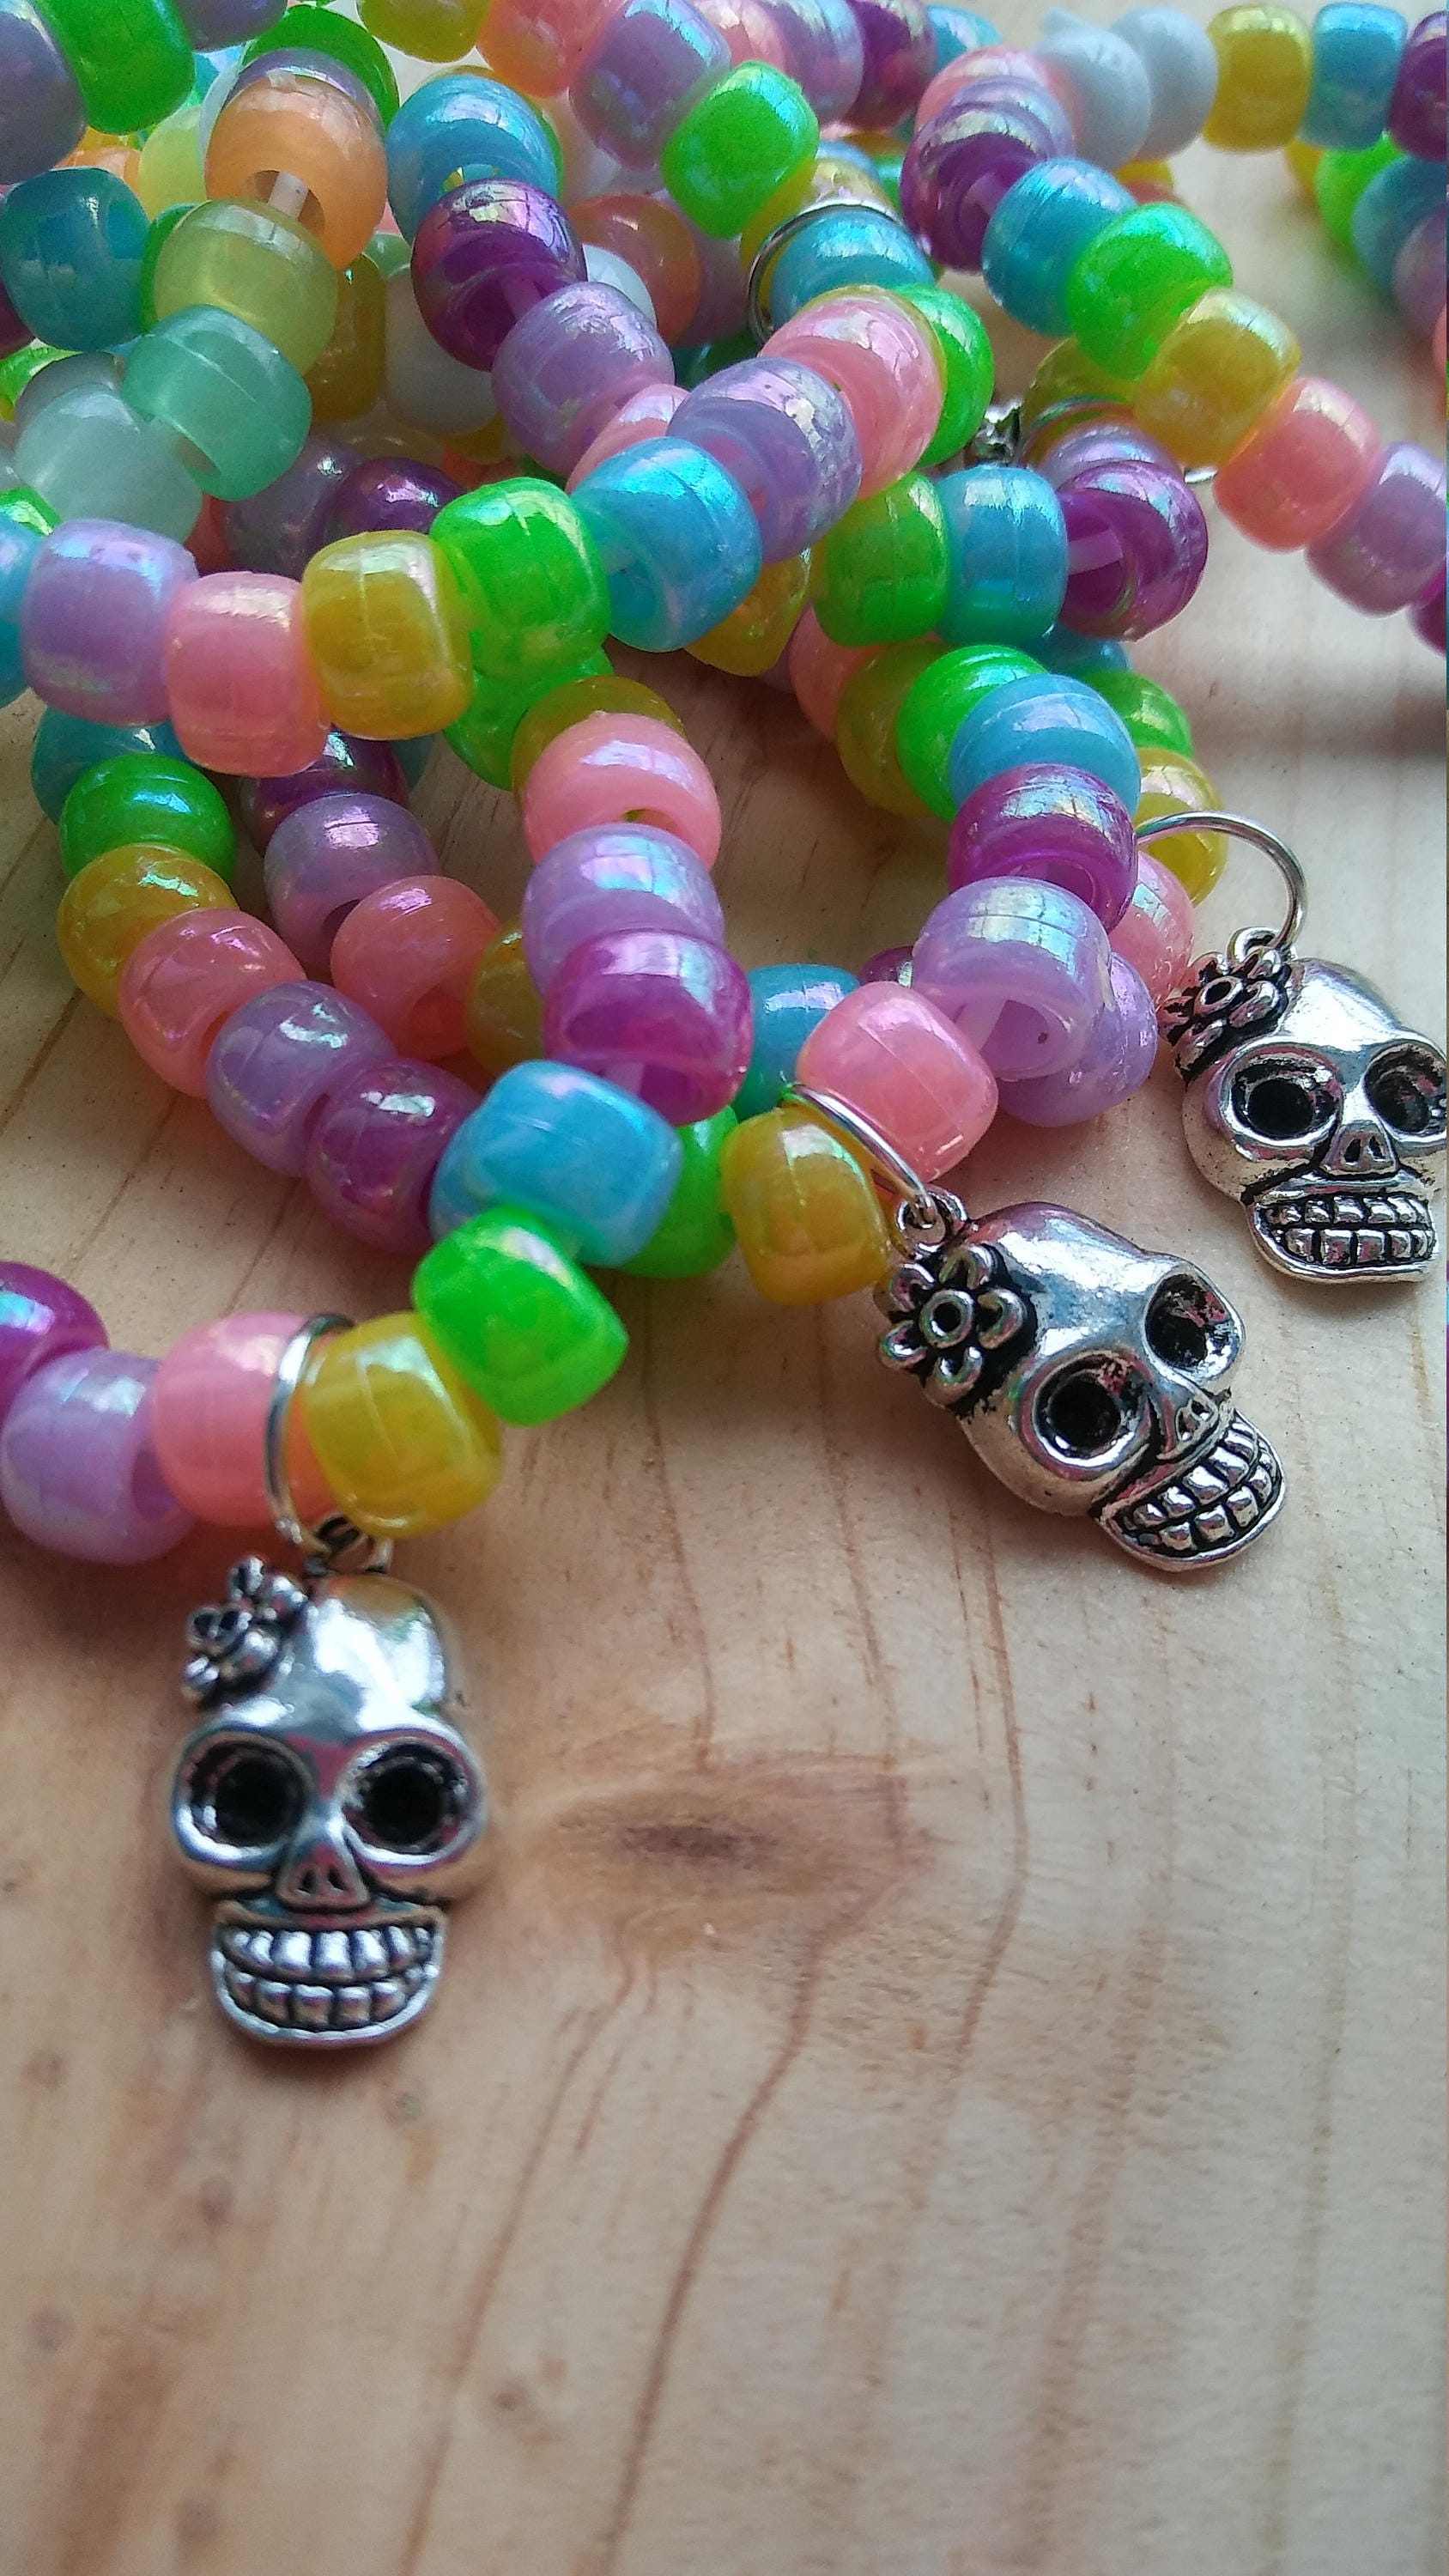 rave pinterest pin m bracelet currently raves festival on i kandi music drugs and